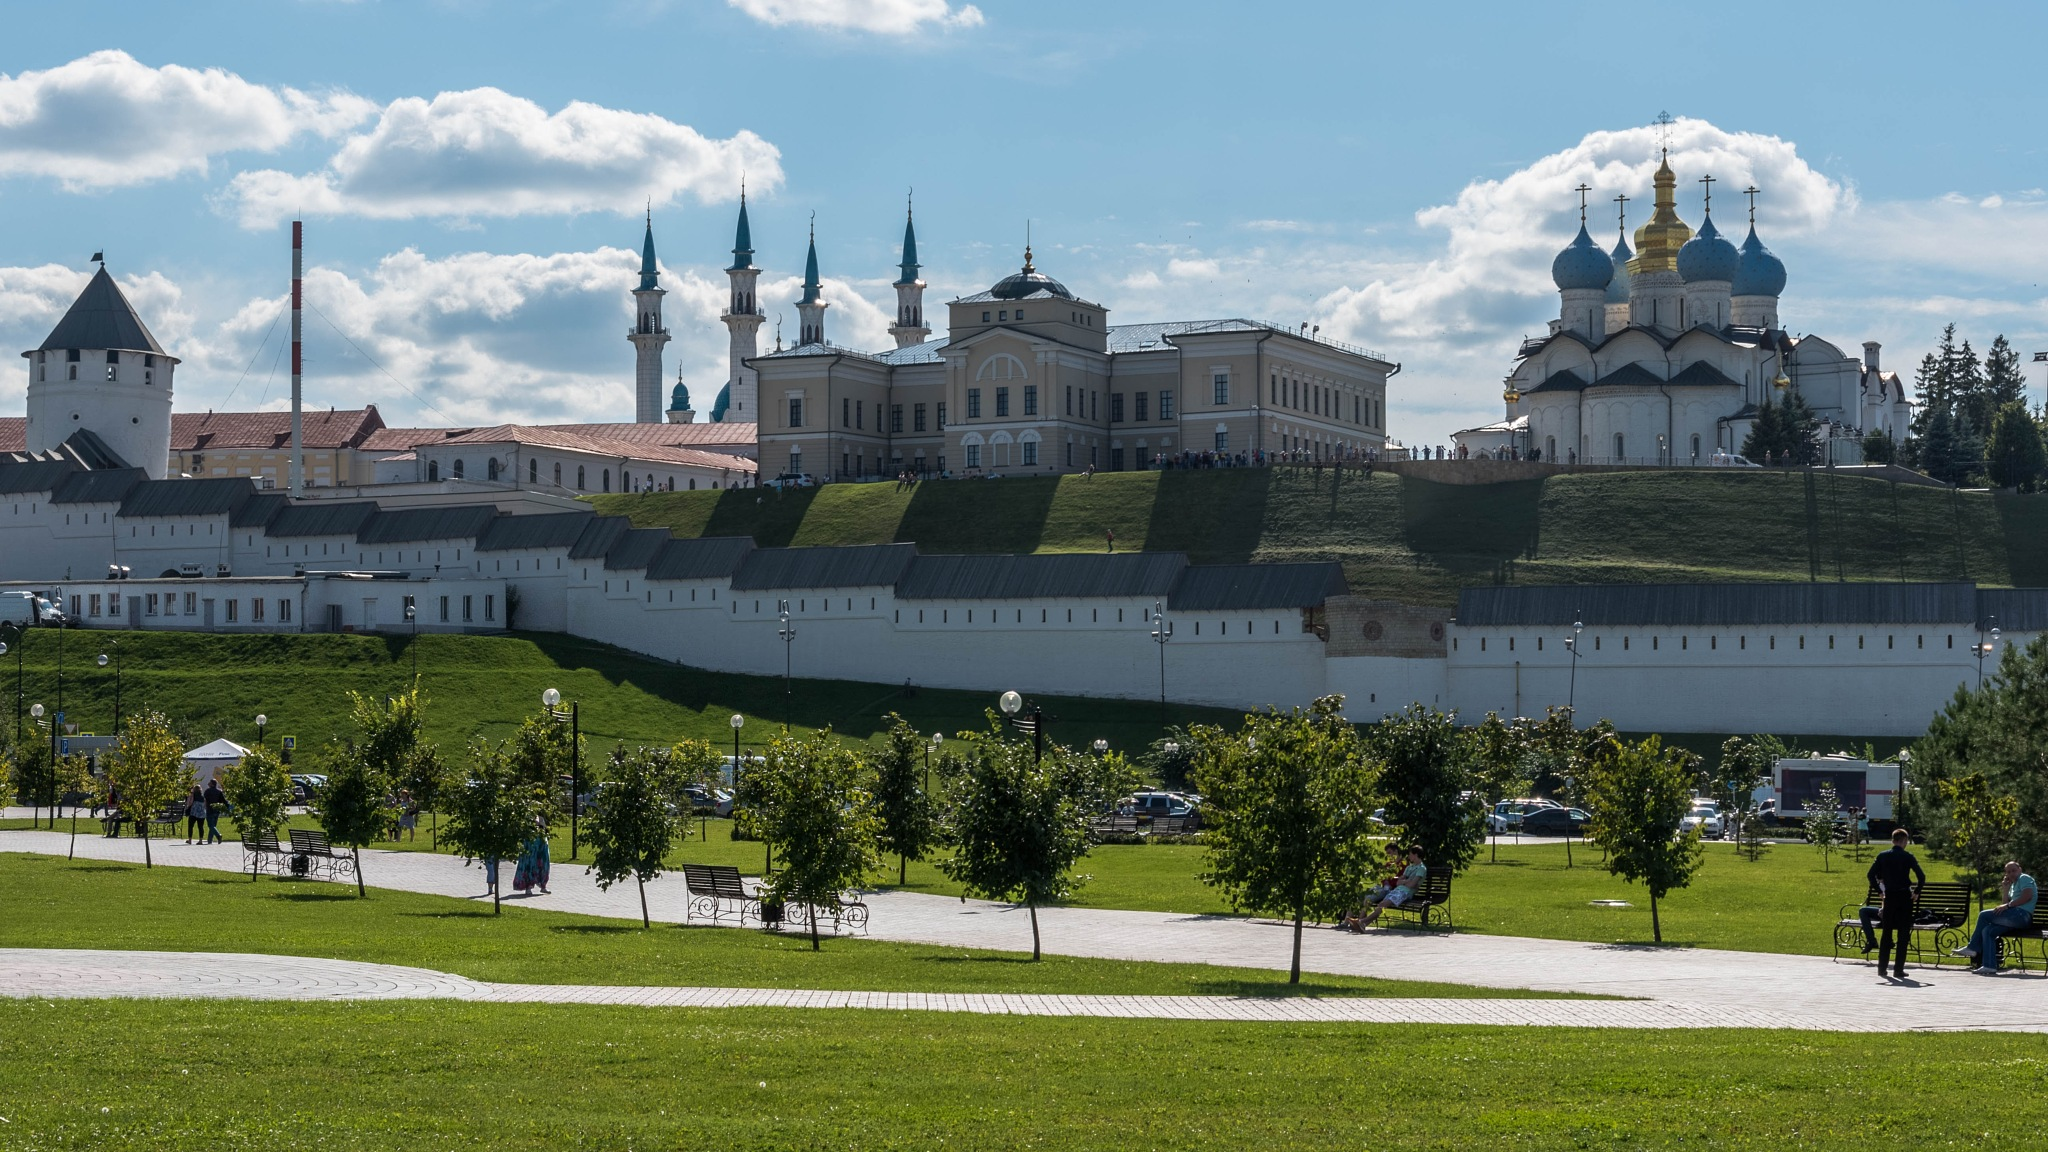 Christian church and Mosque next to each other by Vadim Chepegin